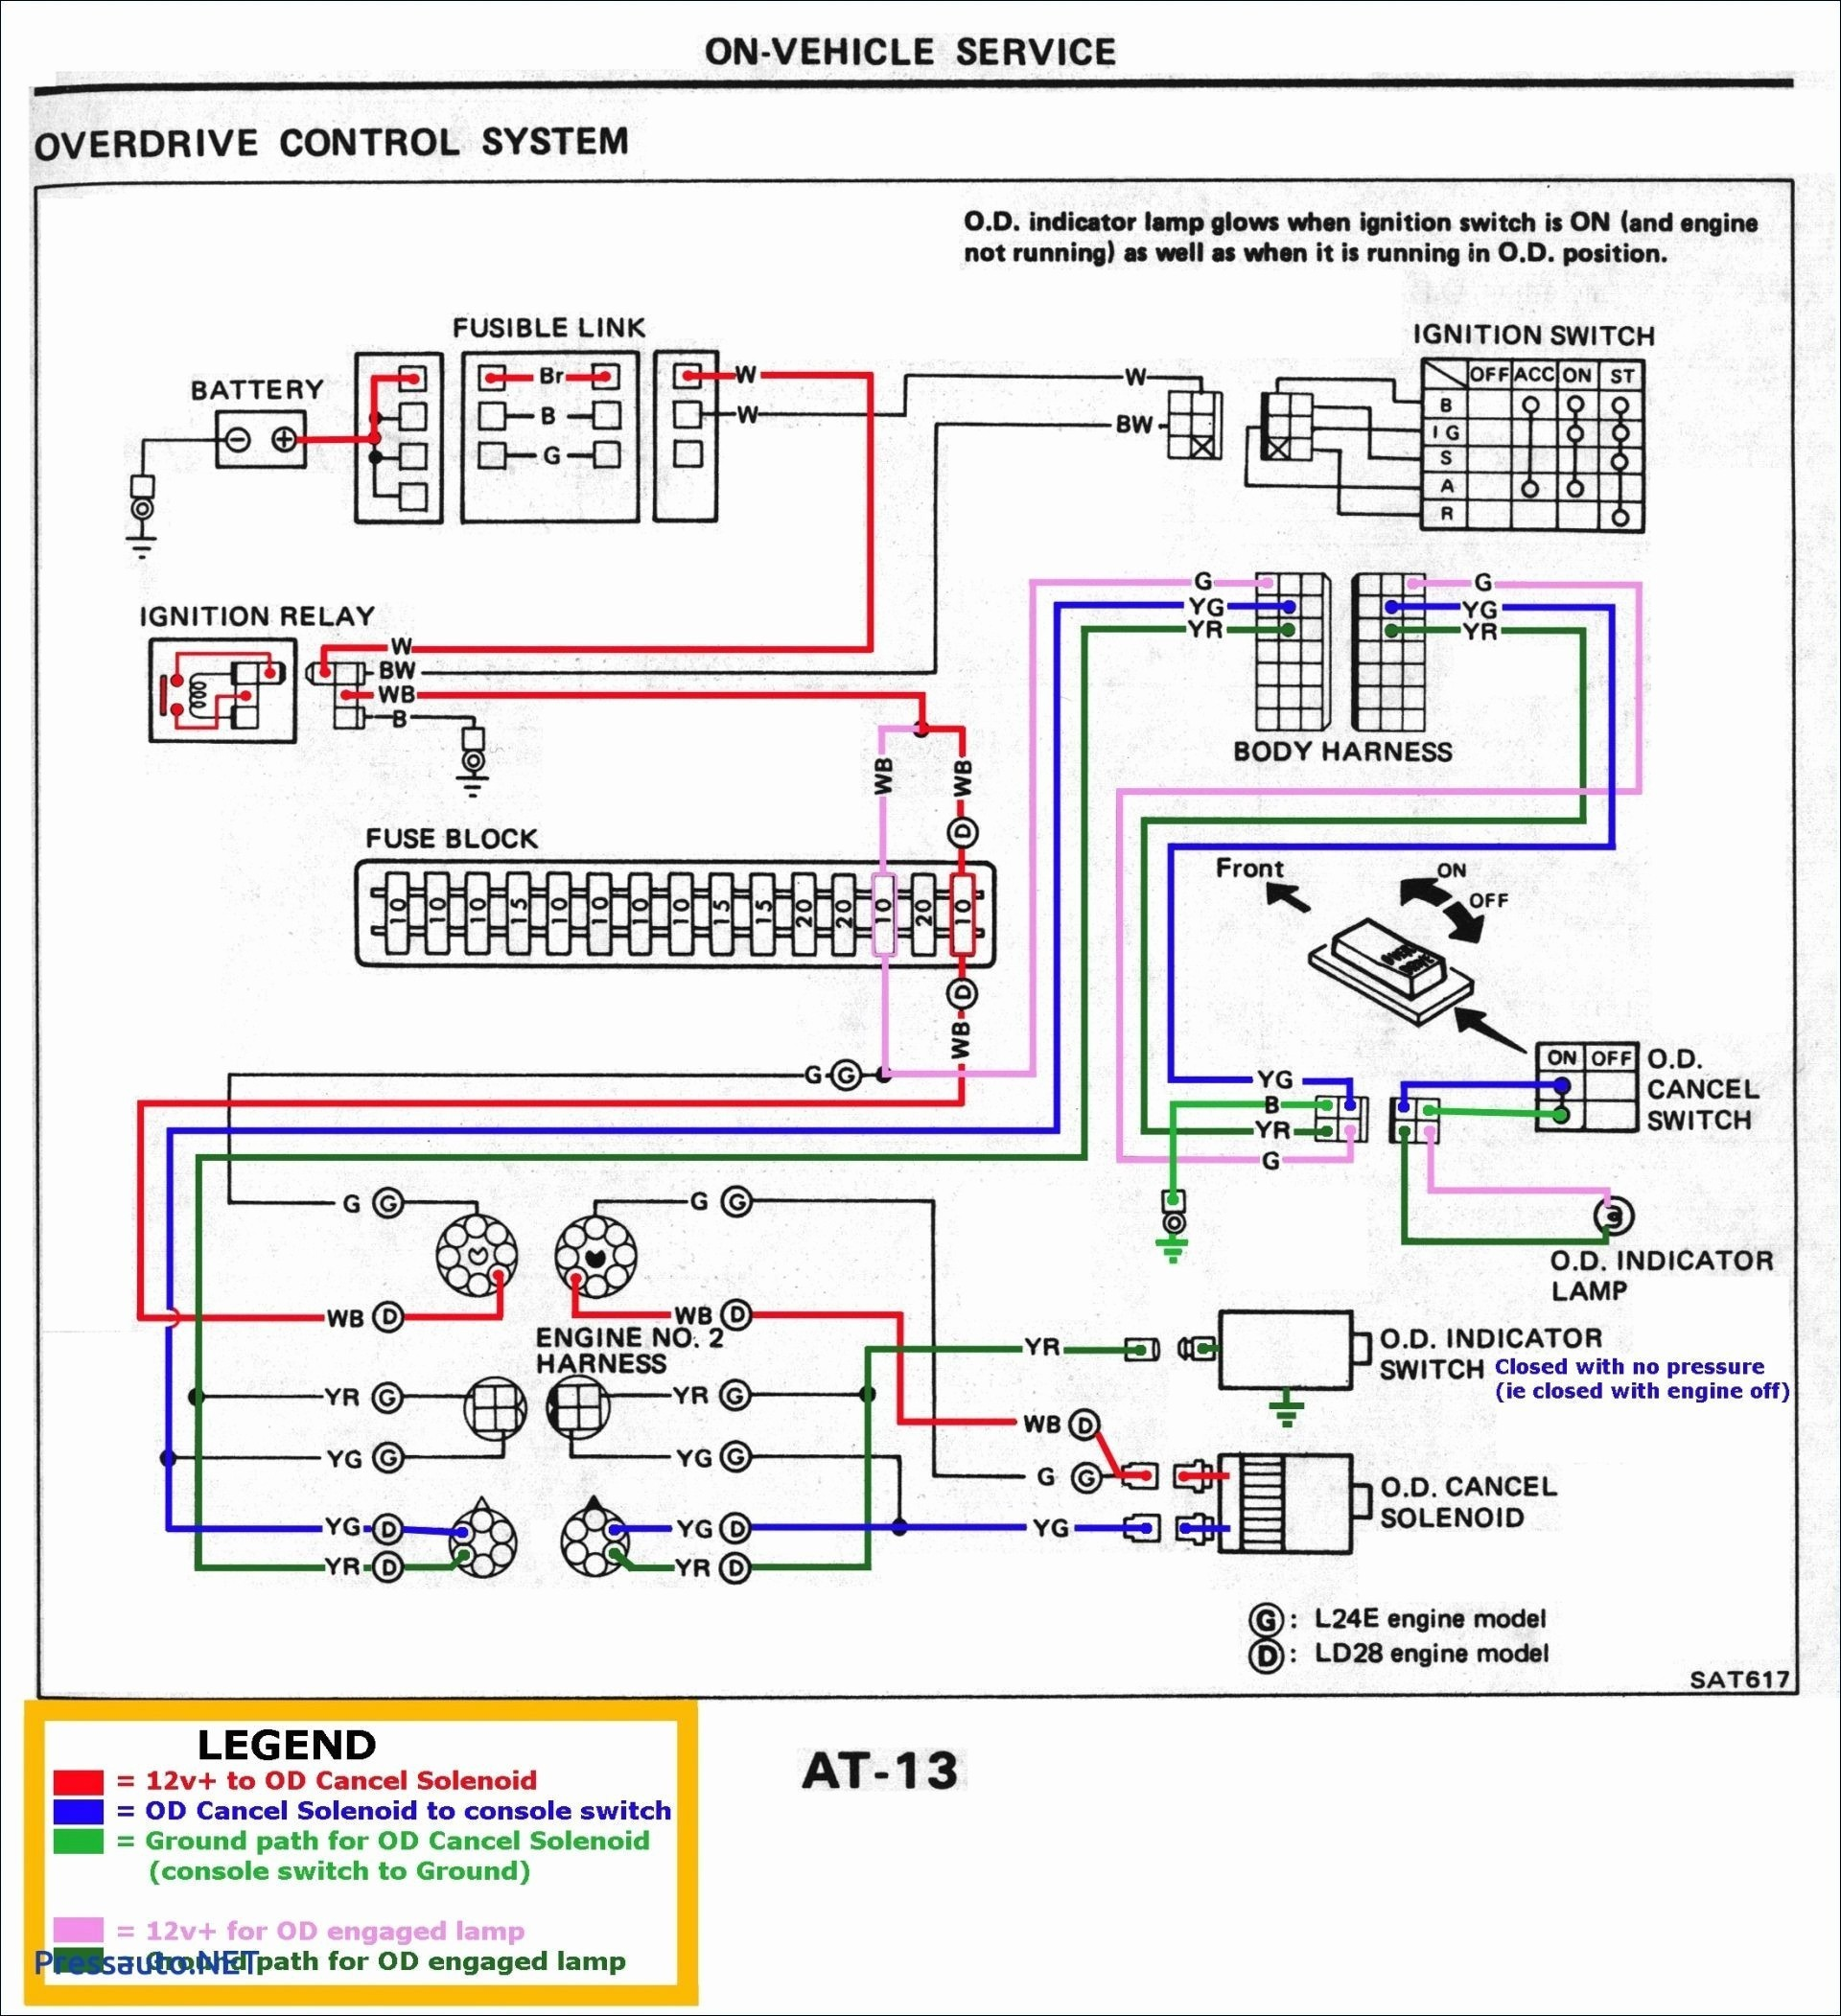 Infiniti Qx4 Engine Diagram Wiring Diagram 2003 Hyundai Tiburon 2 0l Schematics Wiring Diagrams • Of Infiniti Qx4 Engine Diagram 2001 Infiniti Qx4 Headlight Wiring Diagram Experts Wiring Diagram •